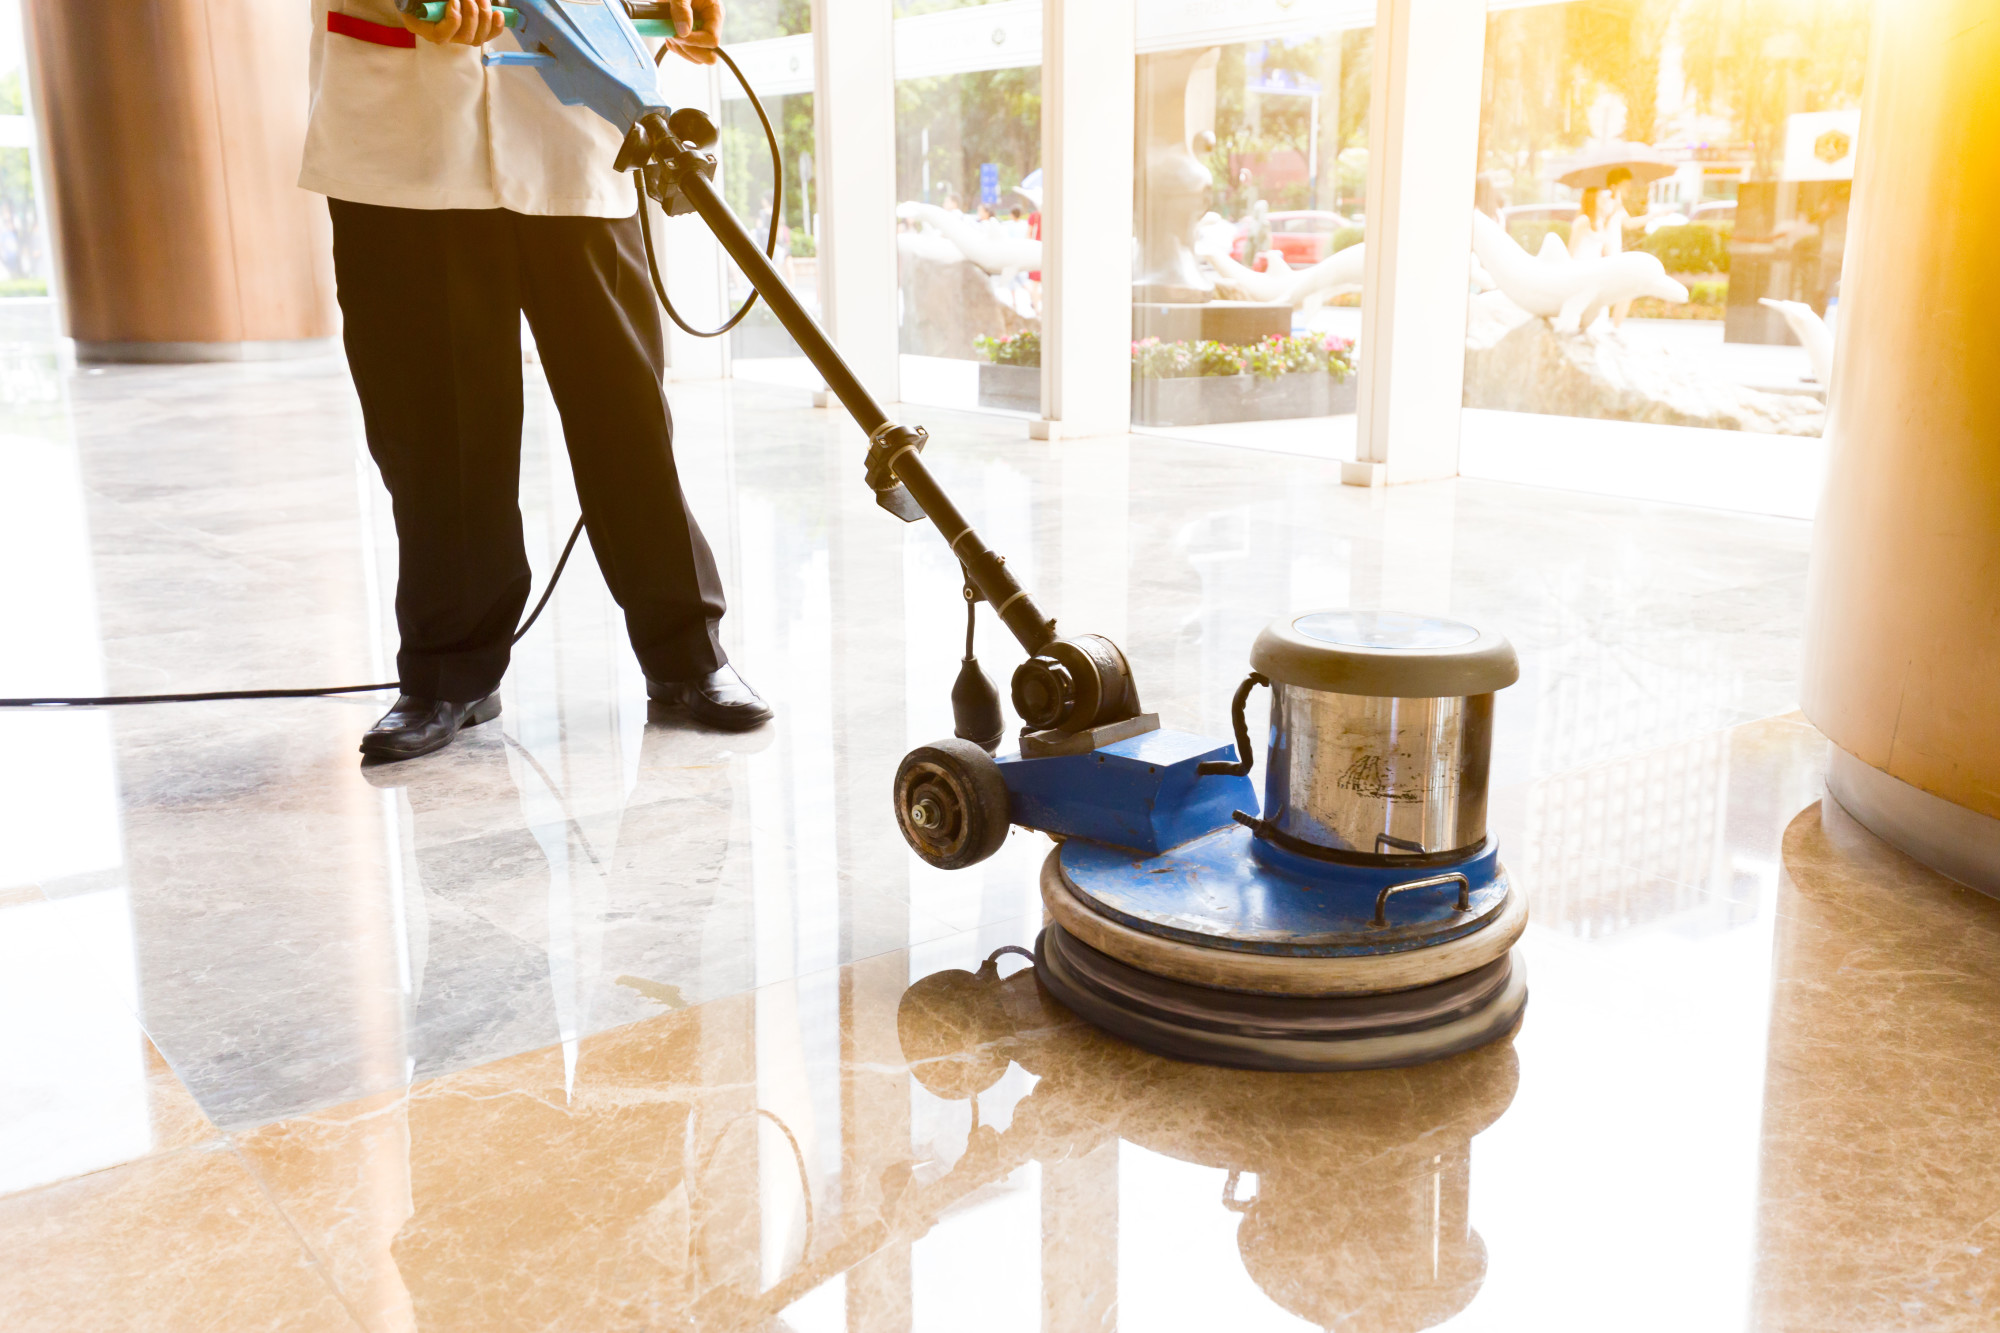 Cleaning Services for Your Business